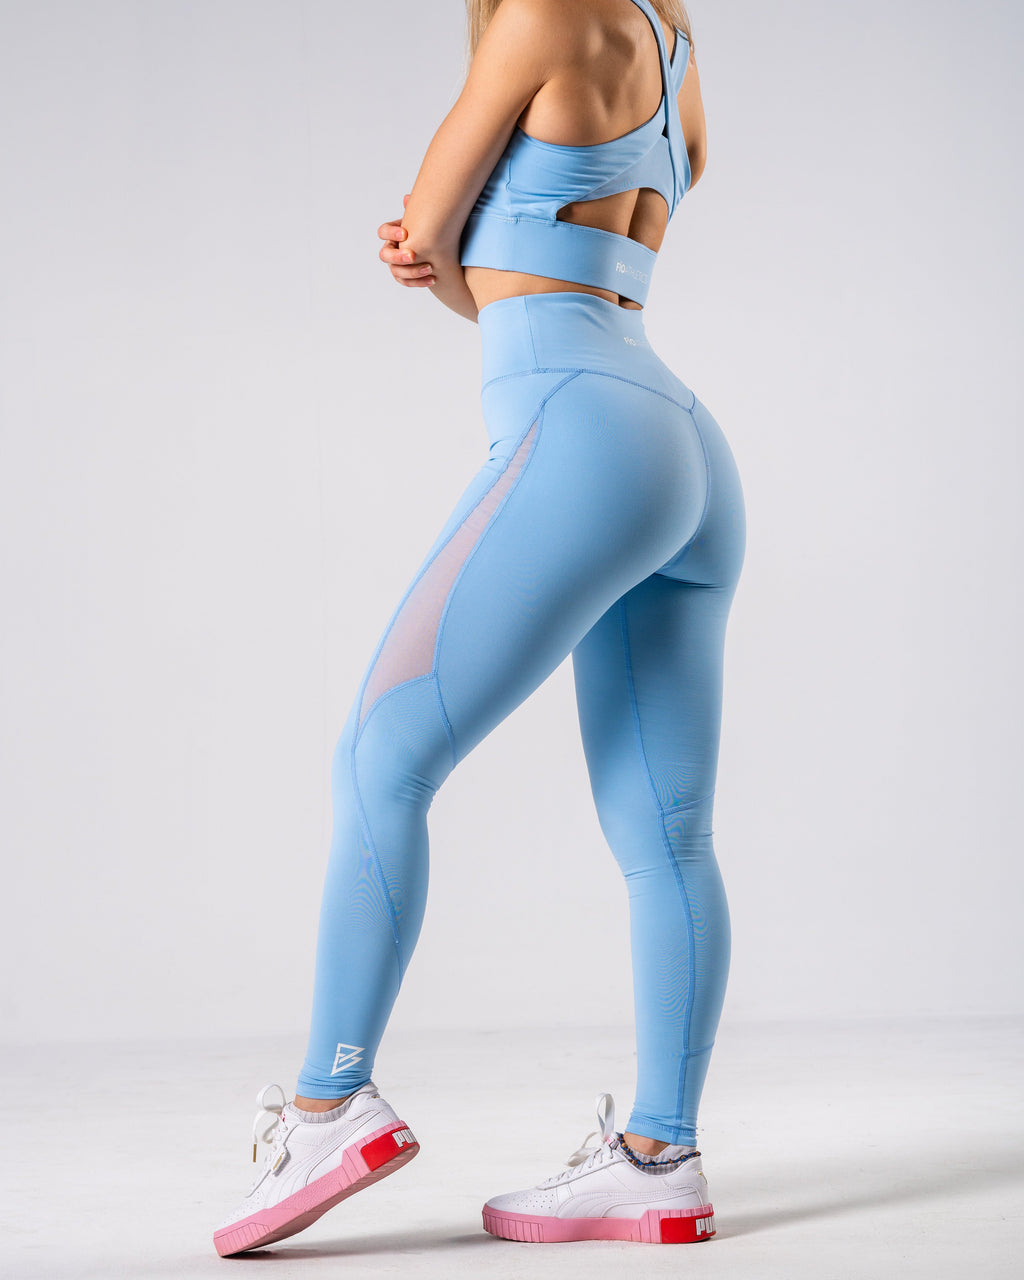 Lush Mesh Leggings - Powder Blue - FIO Athletics